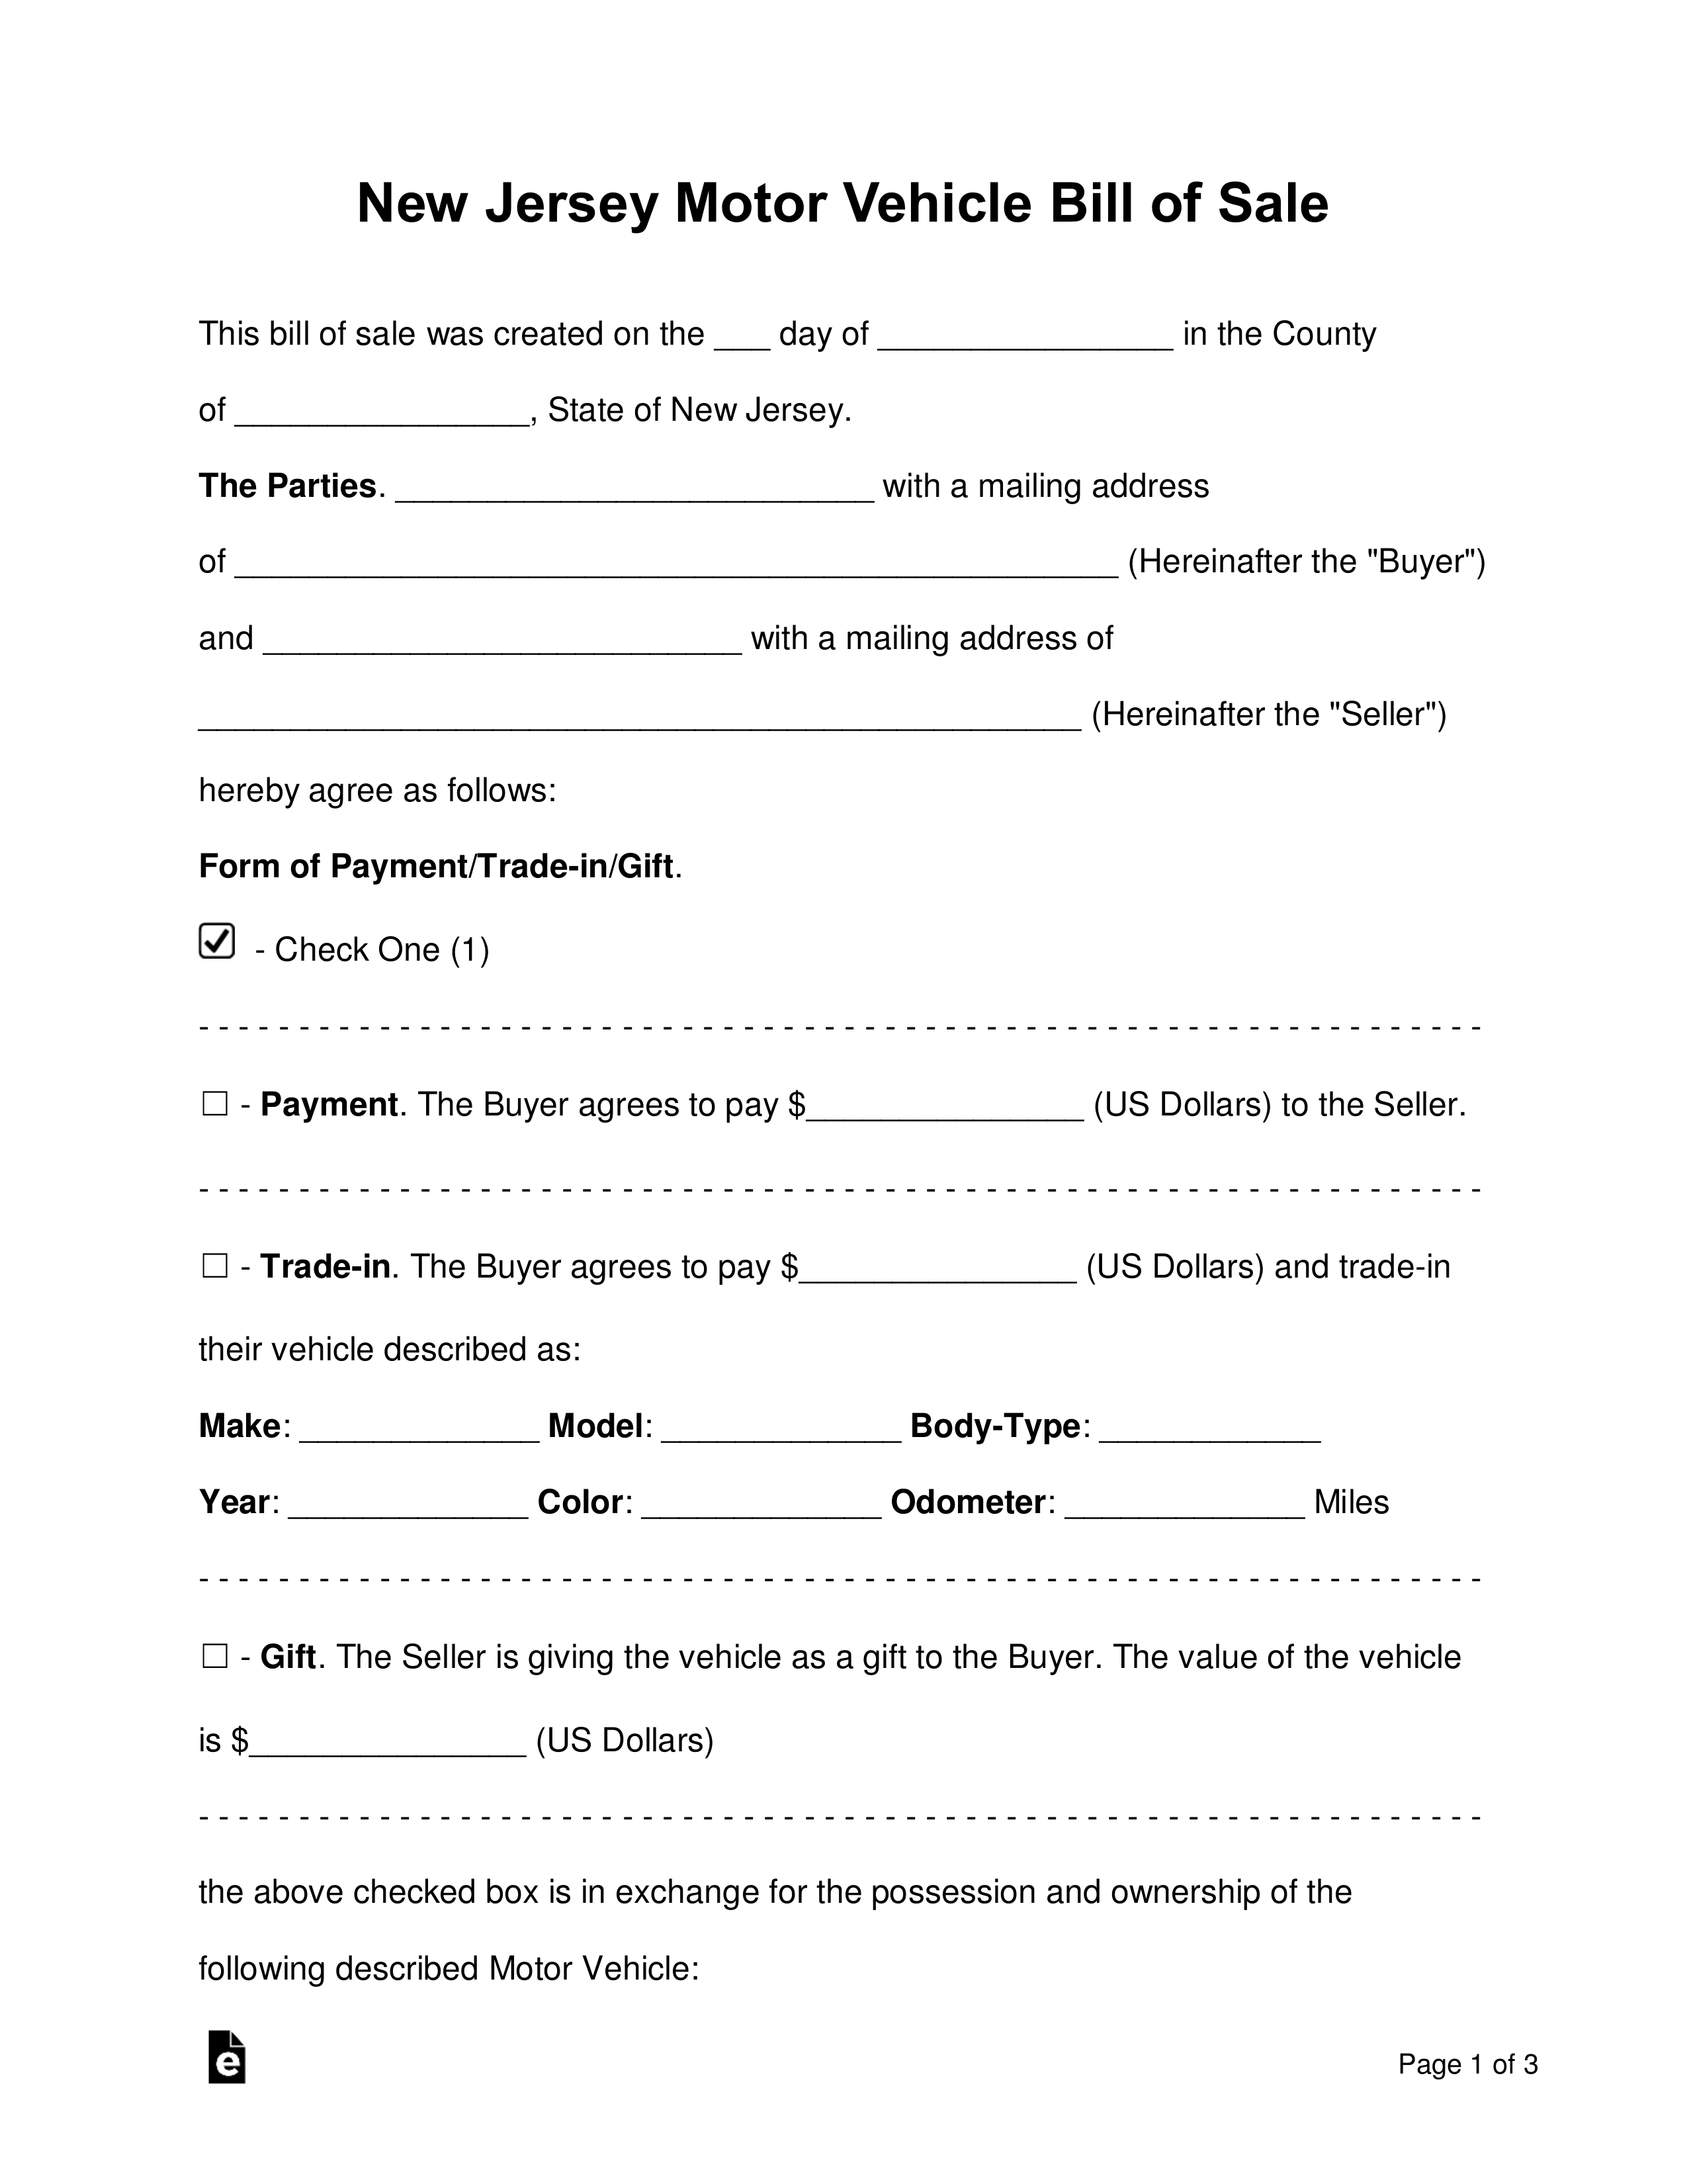 Free New Jersey Bill Of Sale Forms - Word | Pdf | Eforms